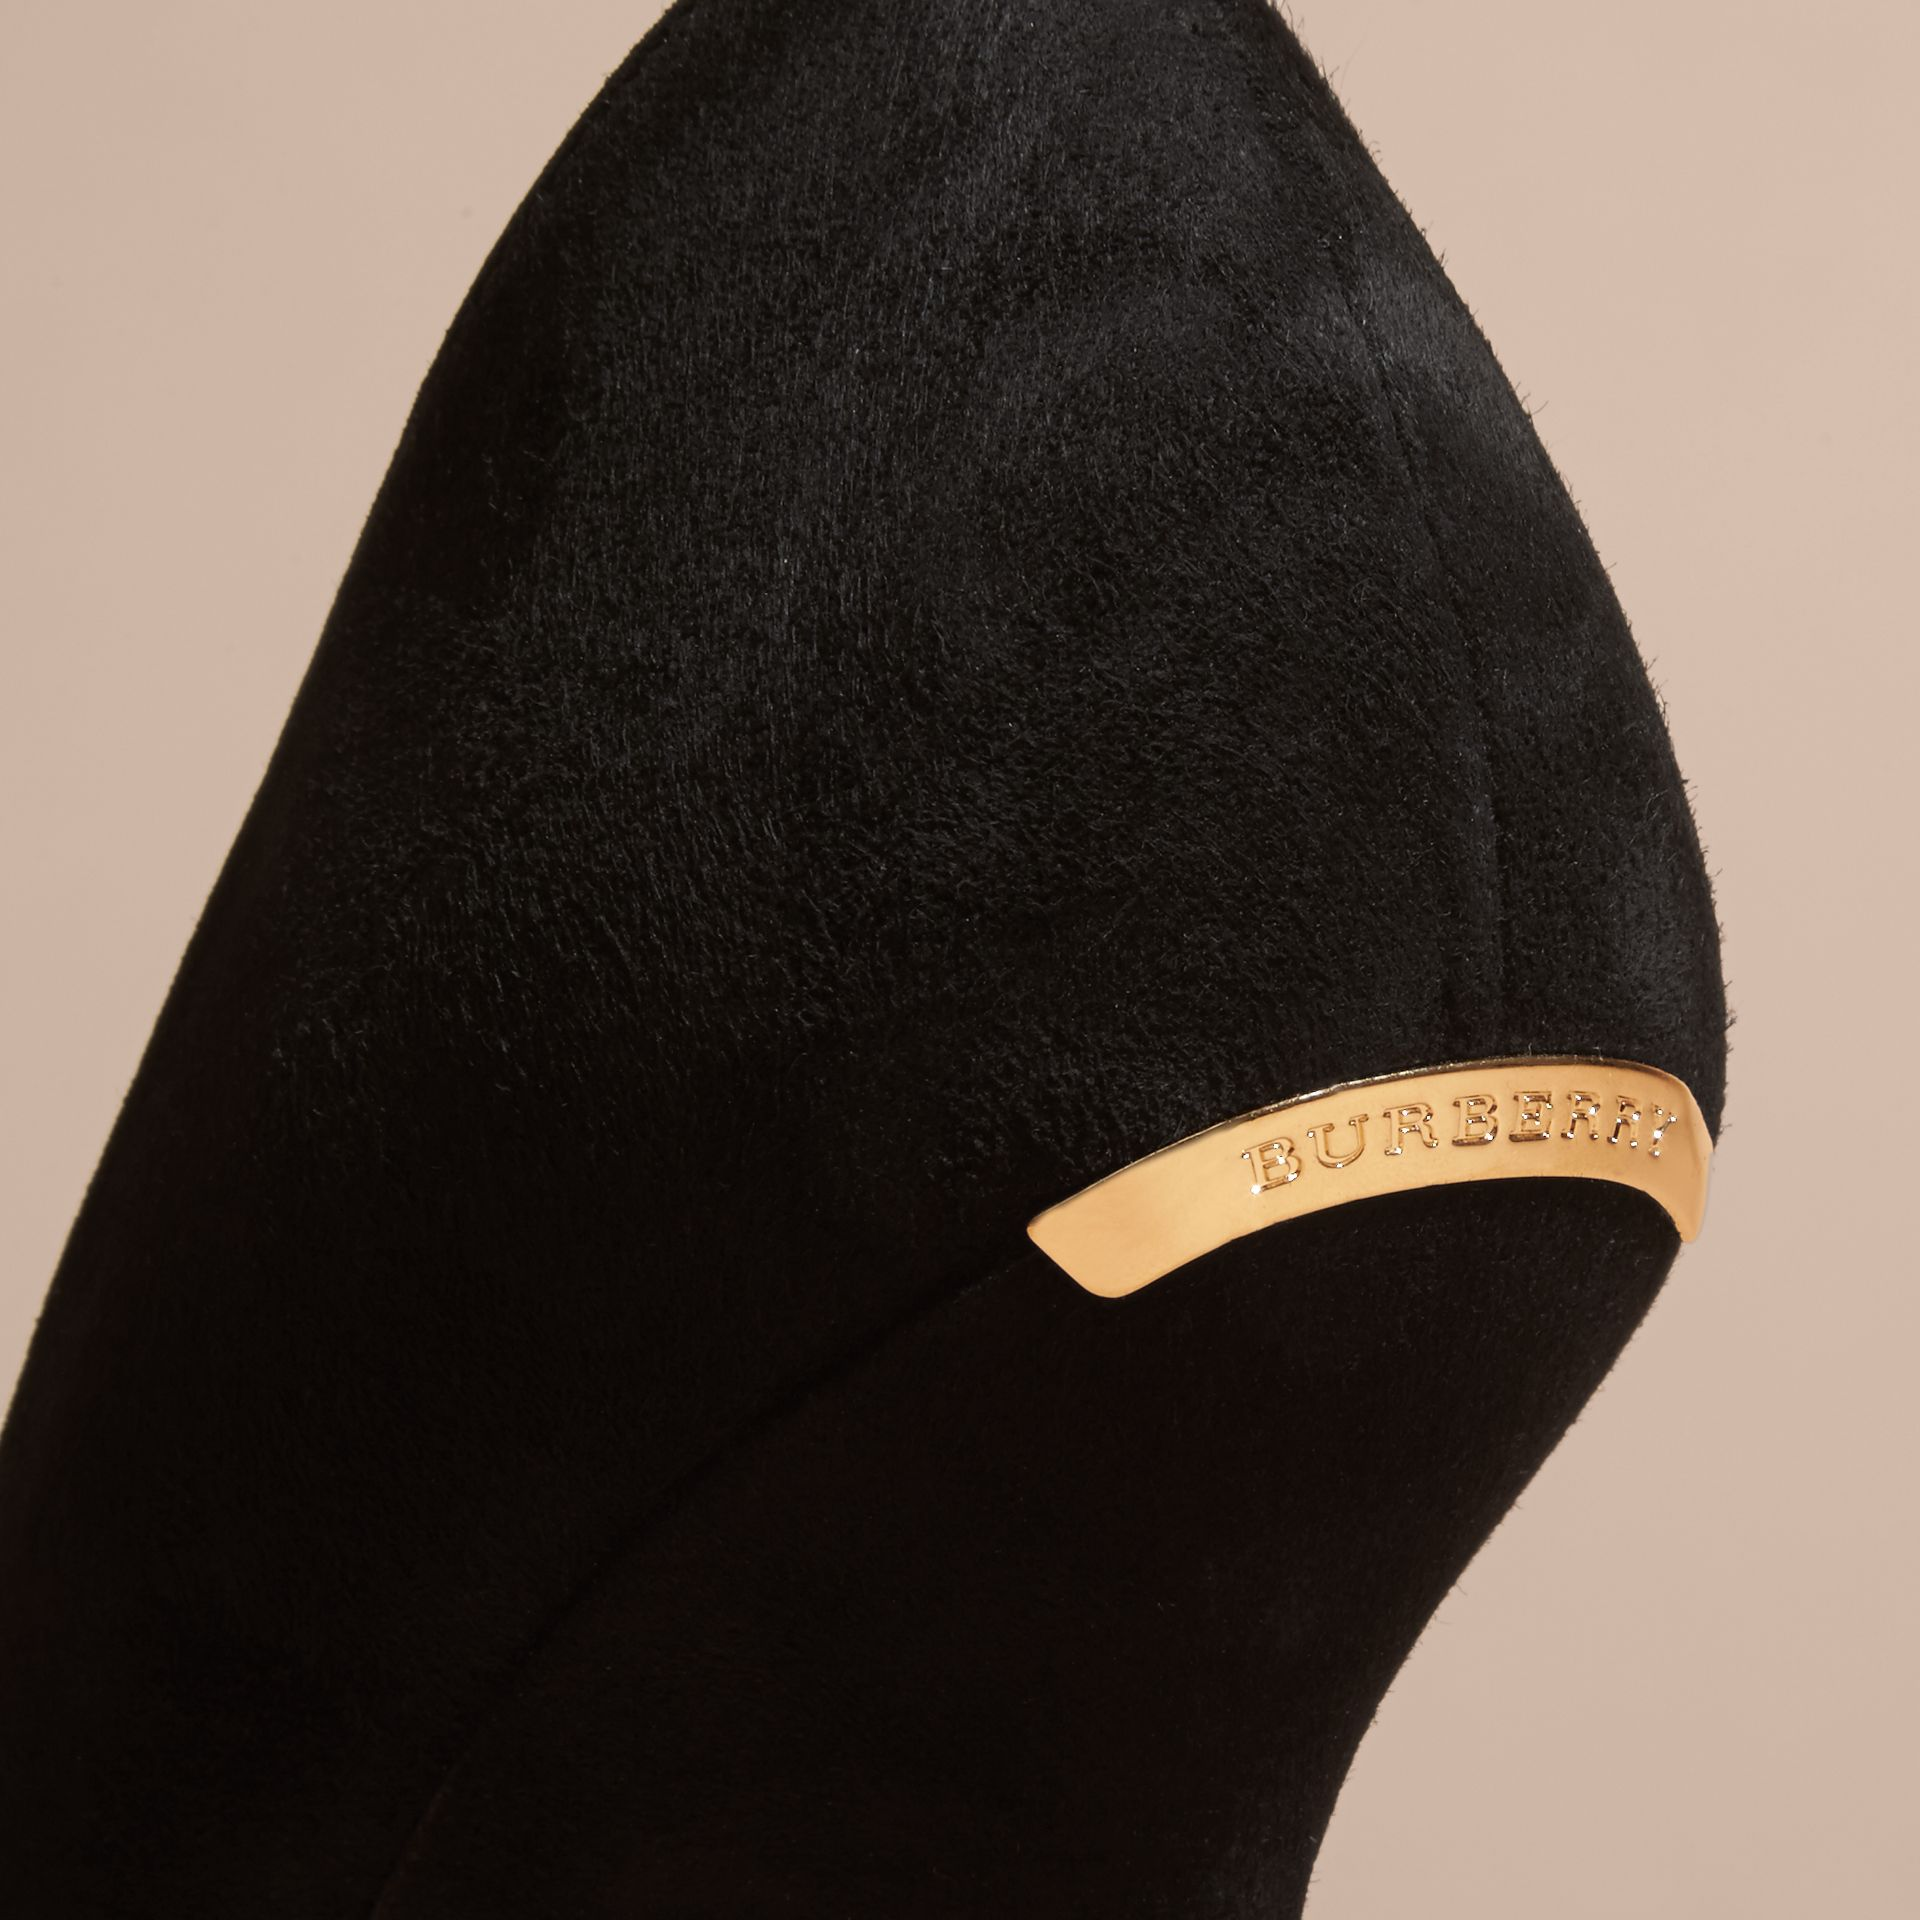 Point-toe Suede D'Orsay Pumps in Black - Women | Burberry - gallery image 2